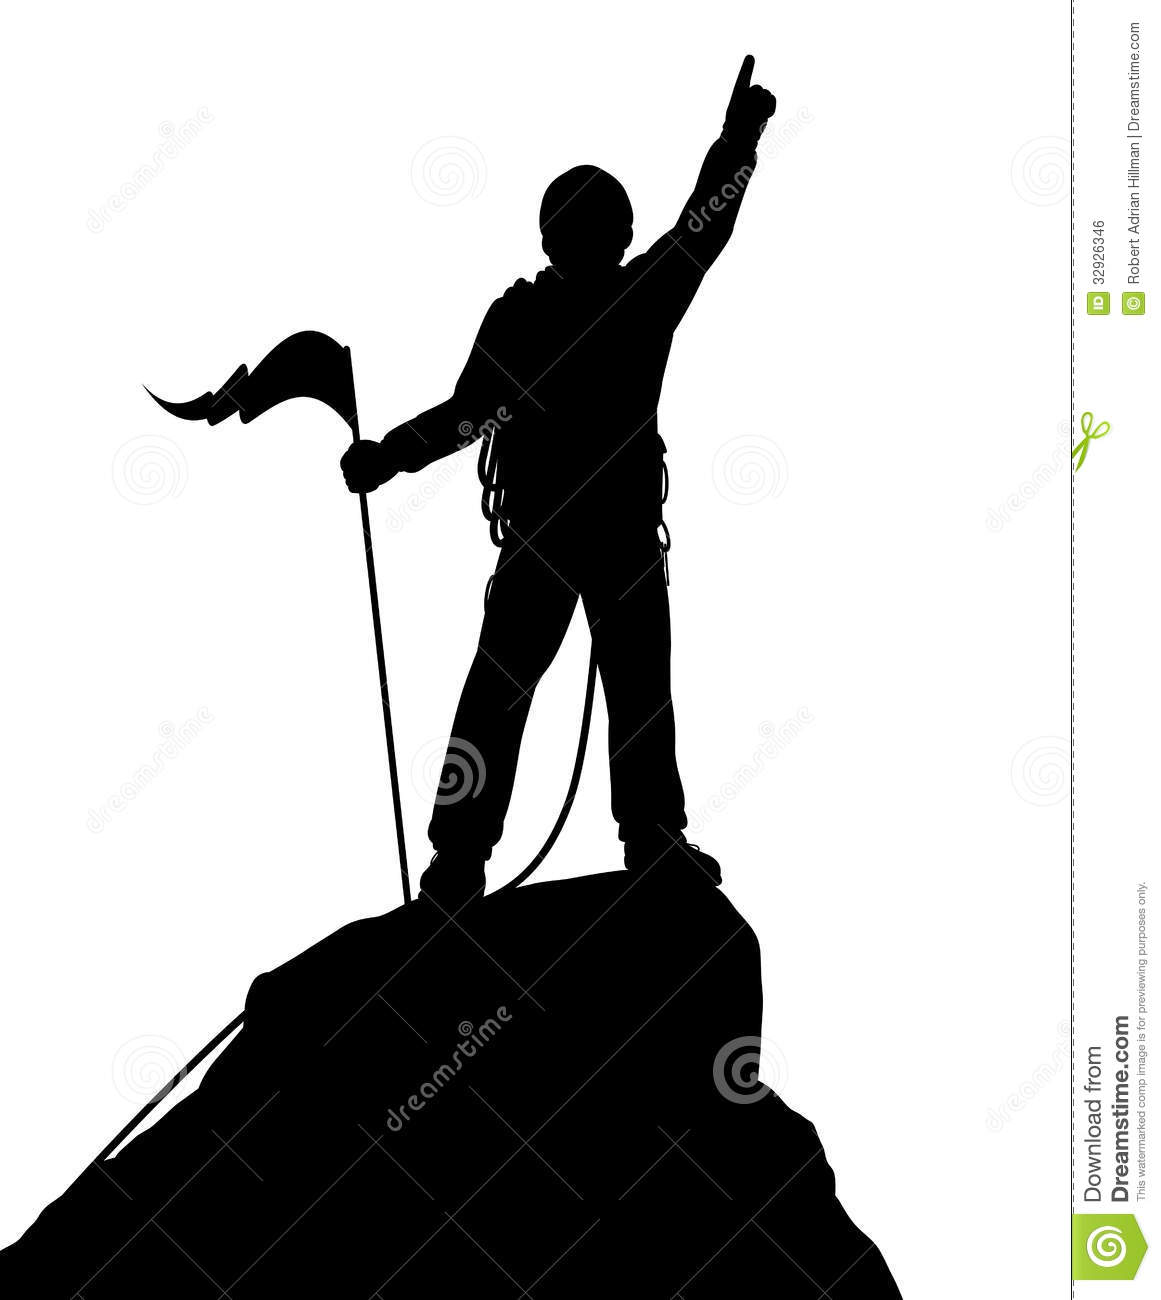 Mountain Climbing Clipart.